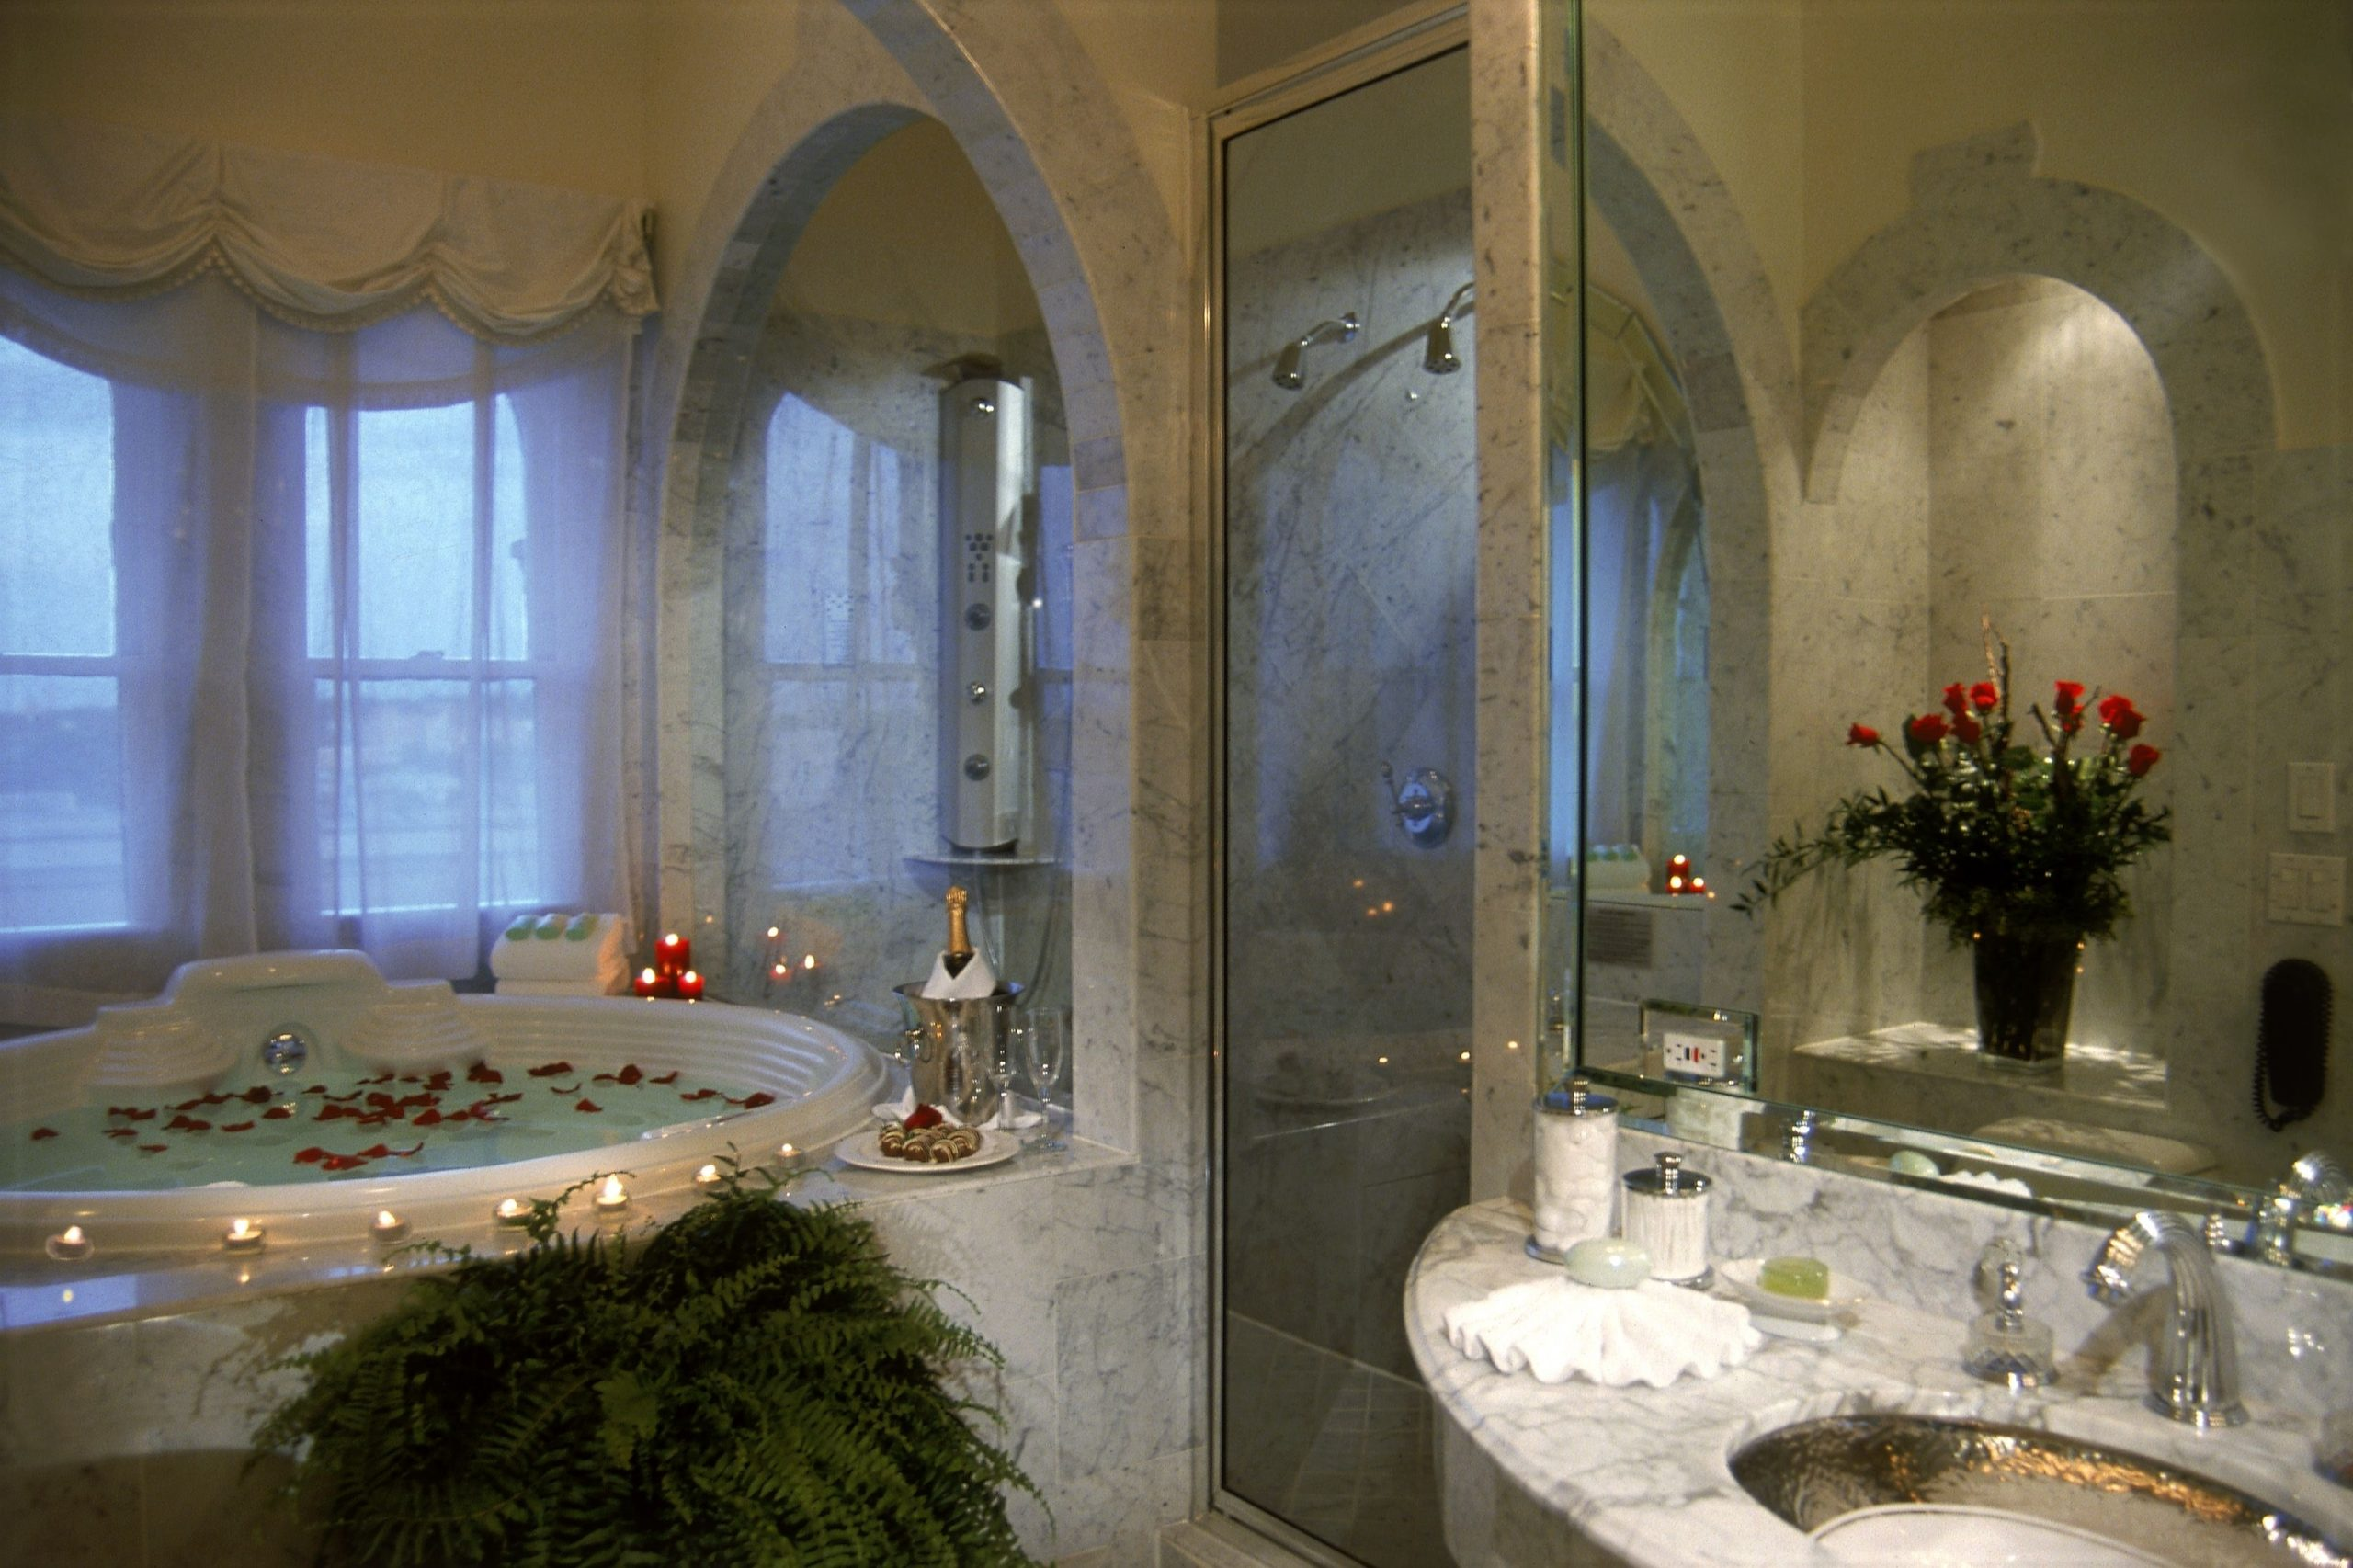 Champagne And Rose Petals In The Jacuzzi In The Renaissance 30+ Champagne Bathroom Suite Ideas